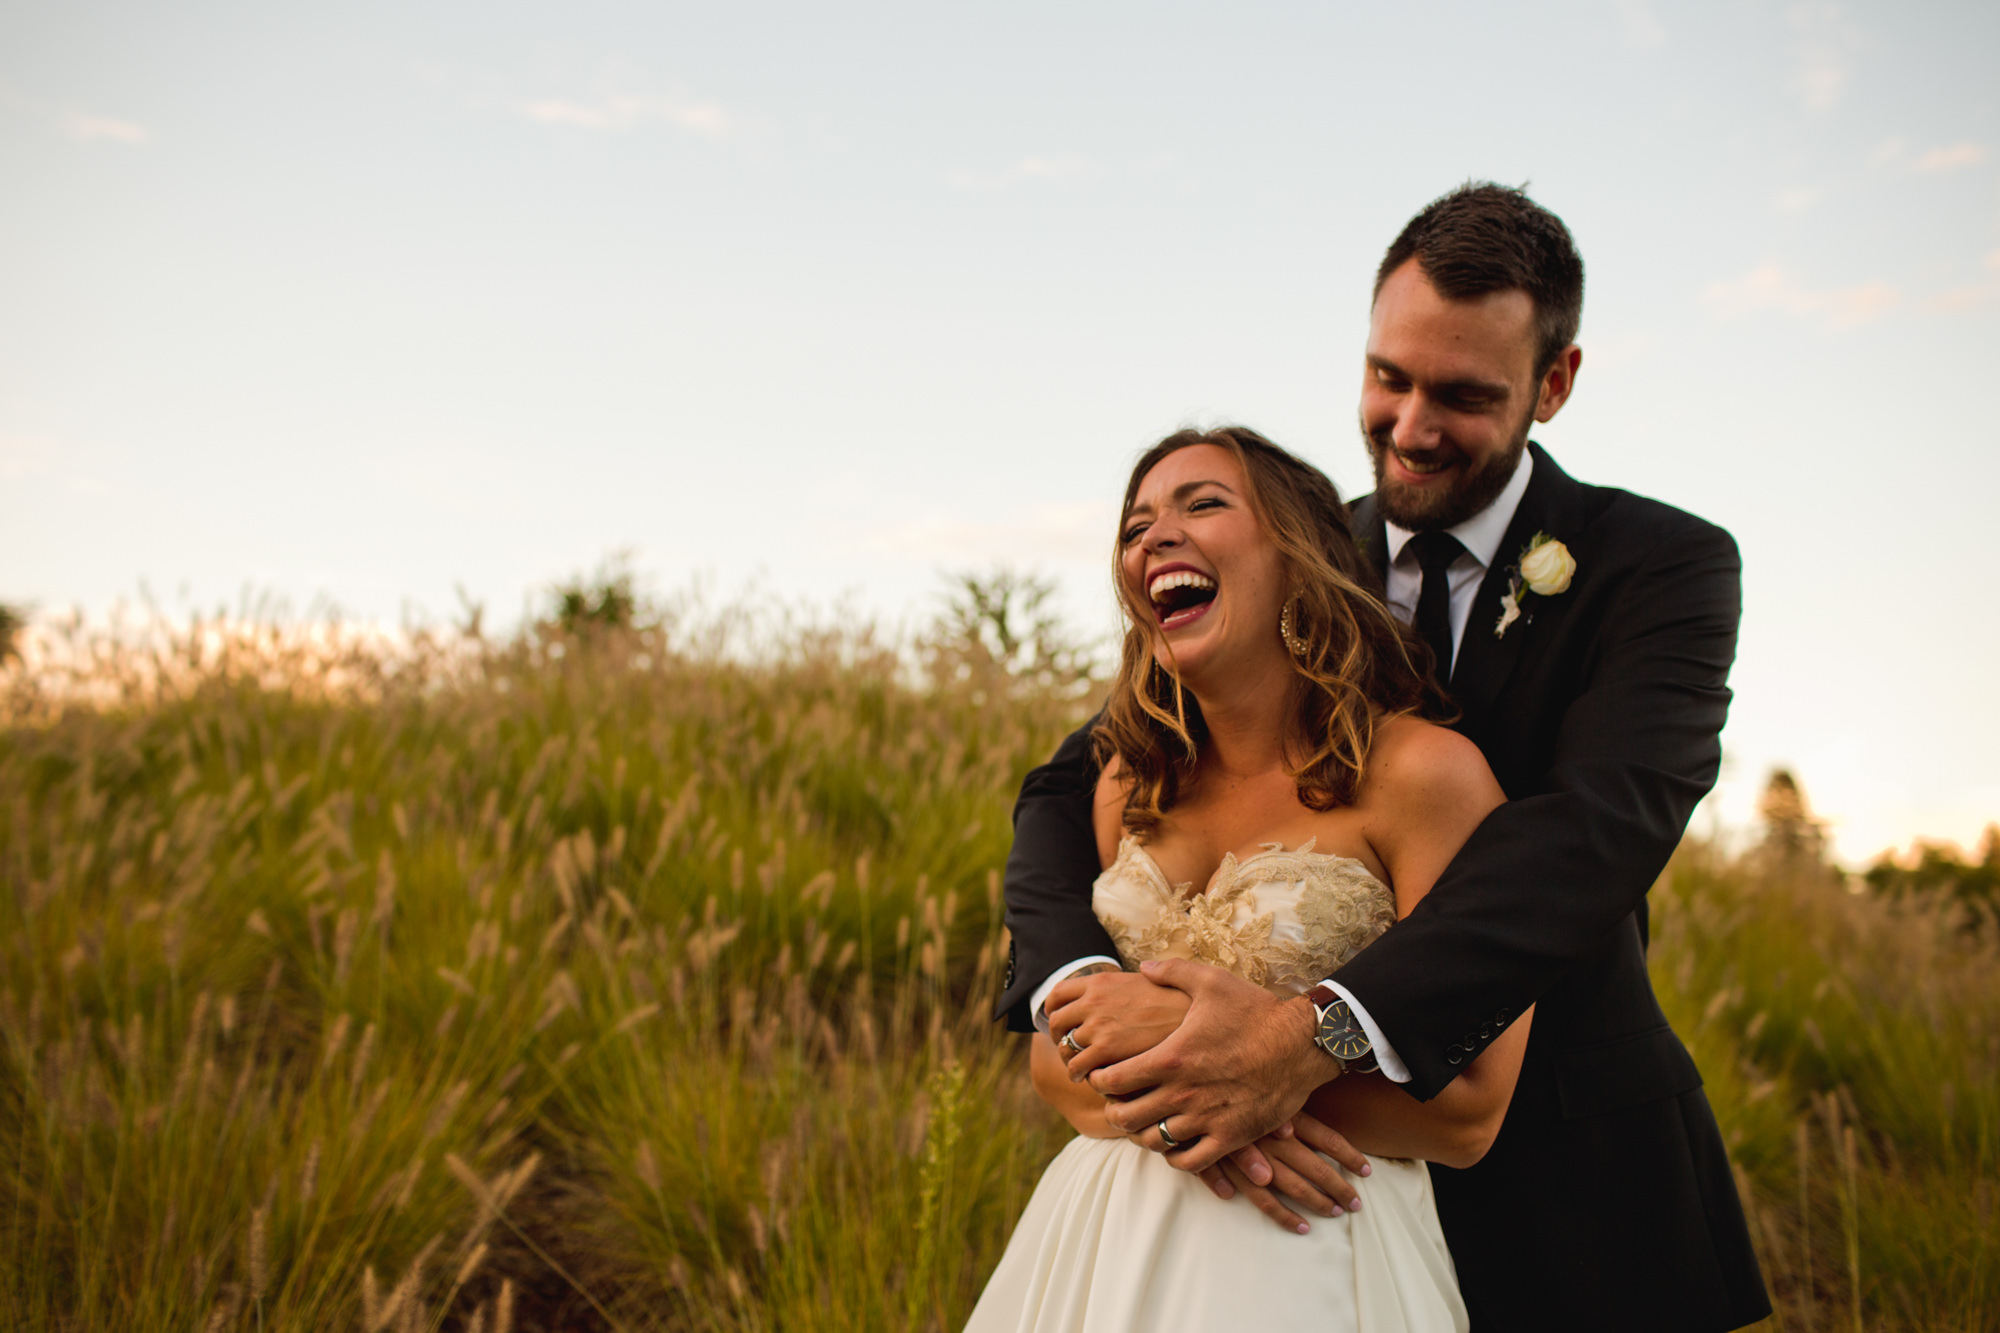 Groom holding laughing bride - Jessica Hill Photography